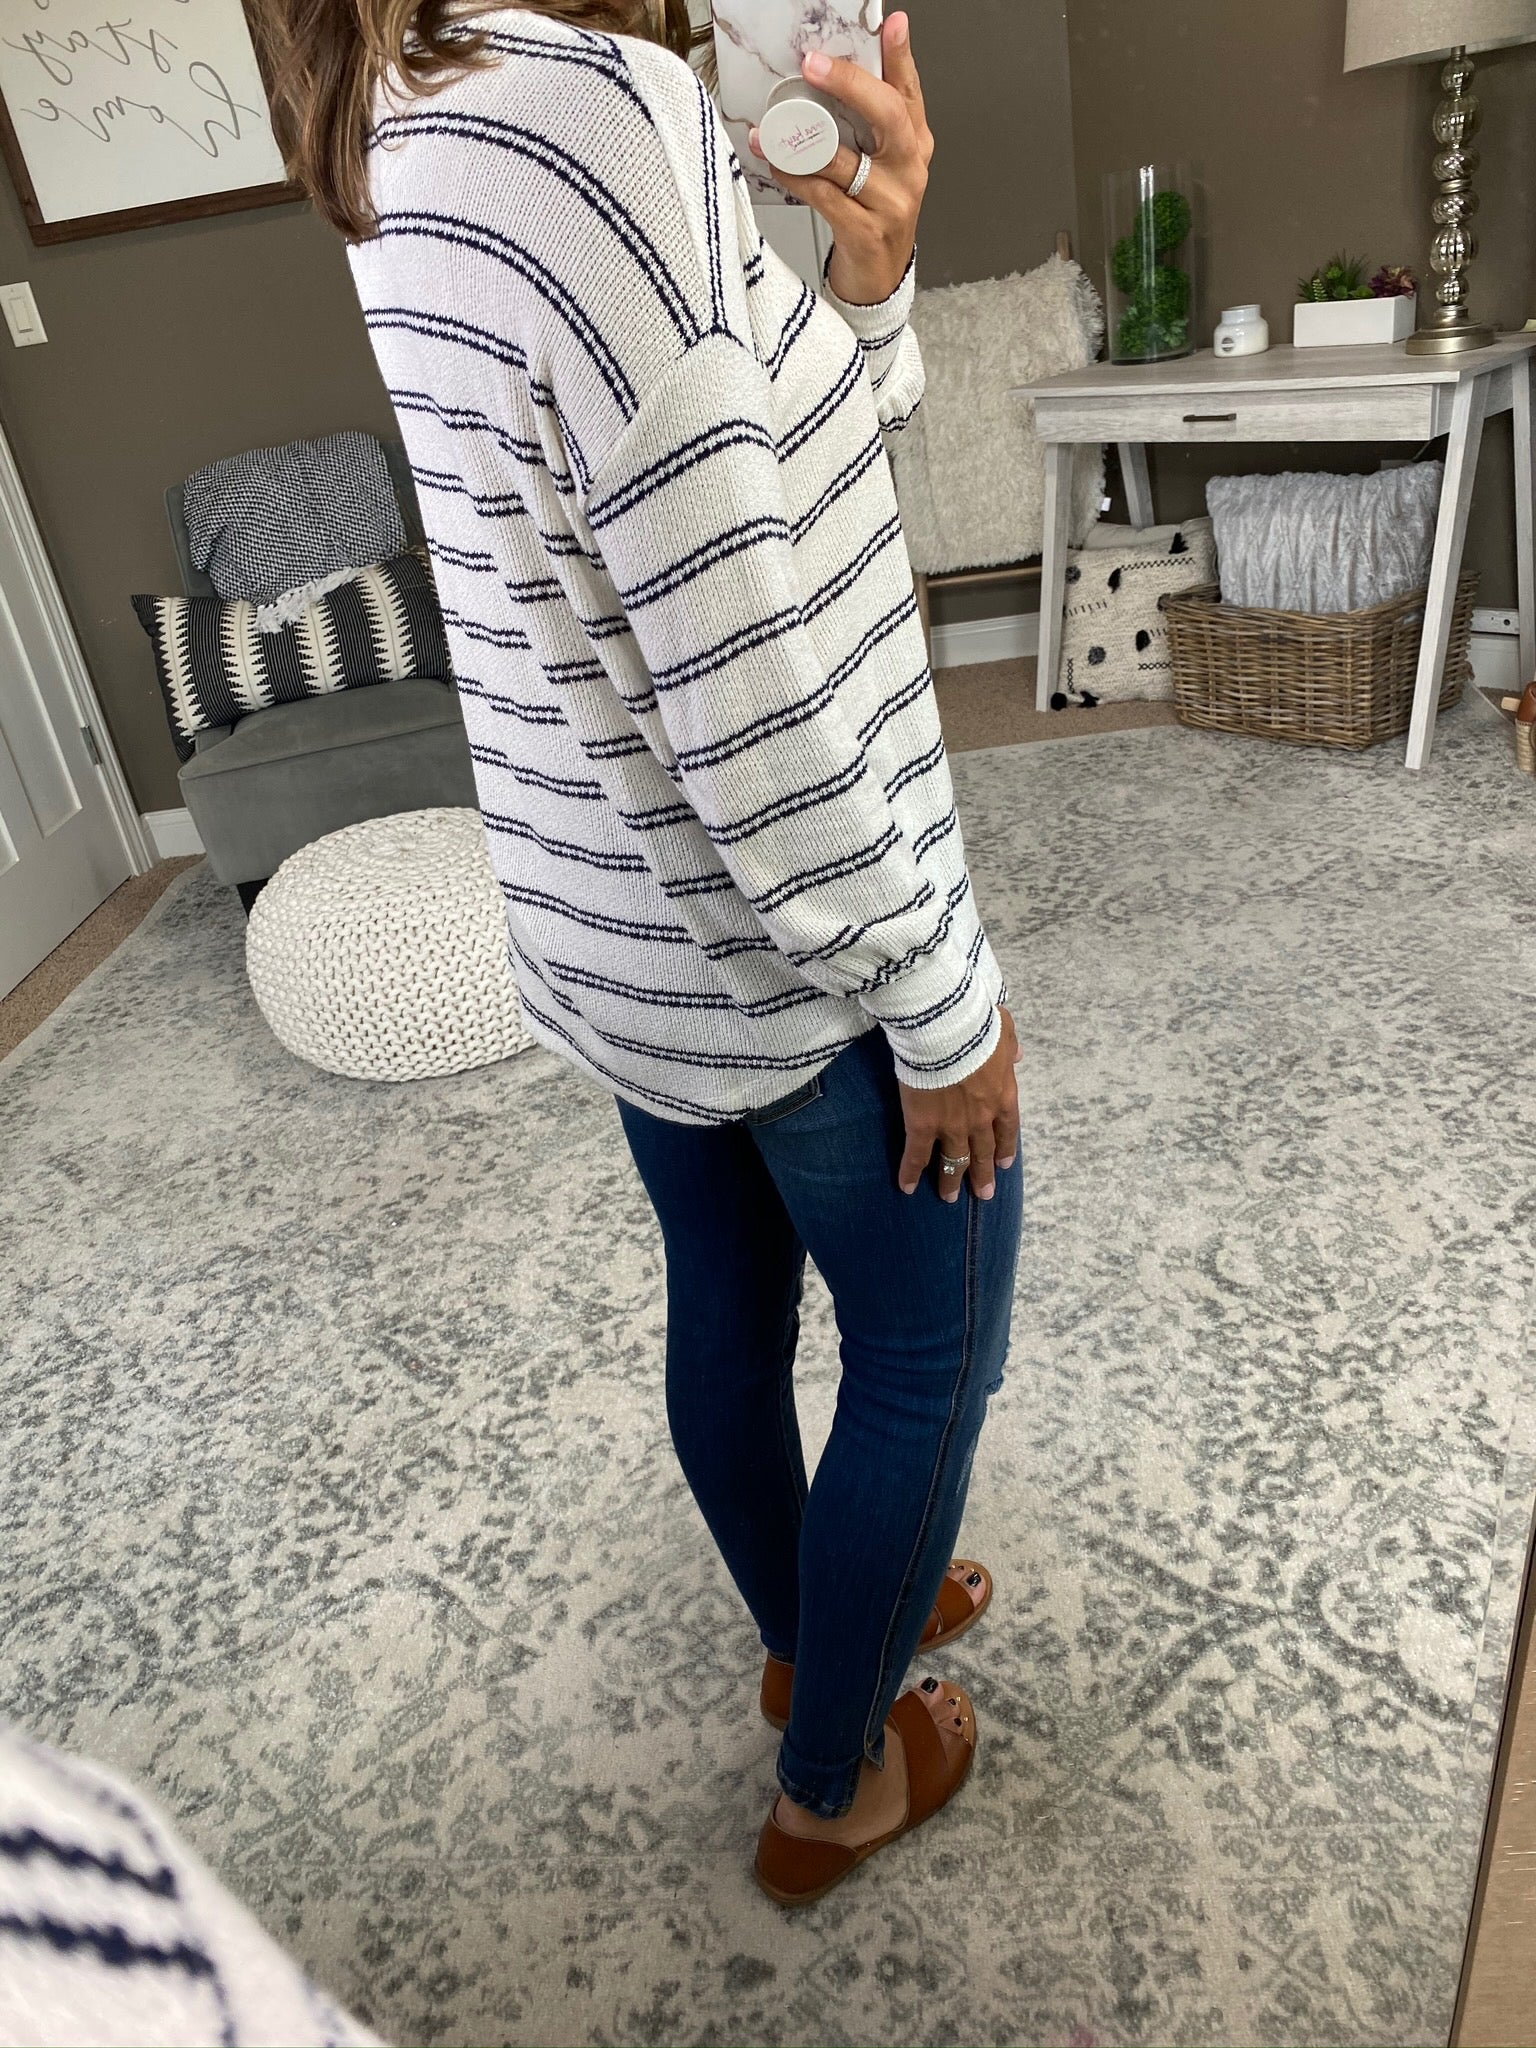 If I Know Me White Knit Sweater With Navy Stripes